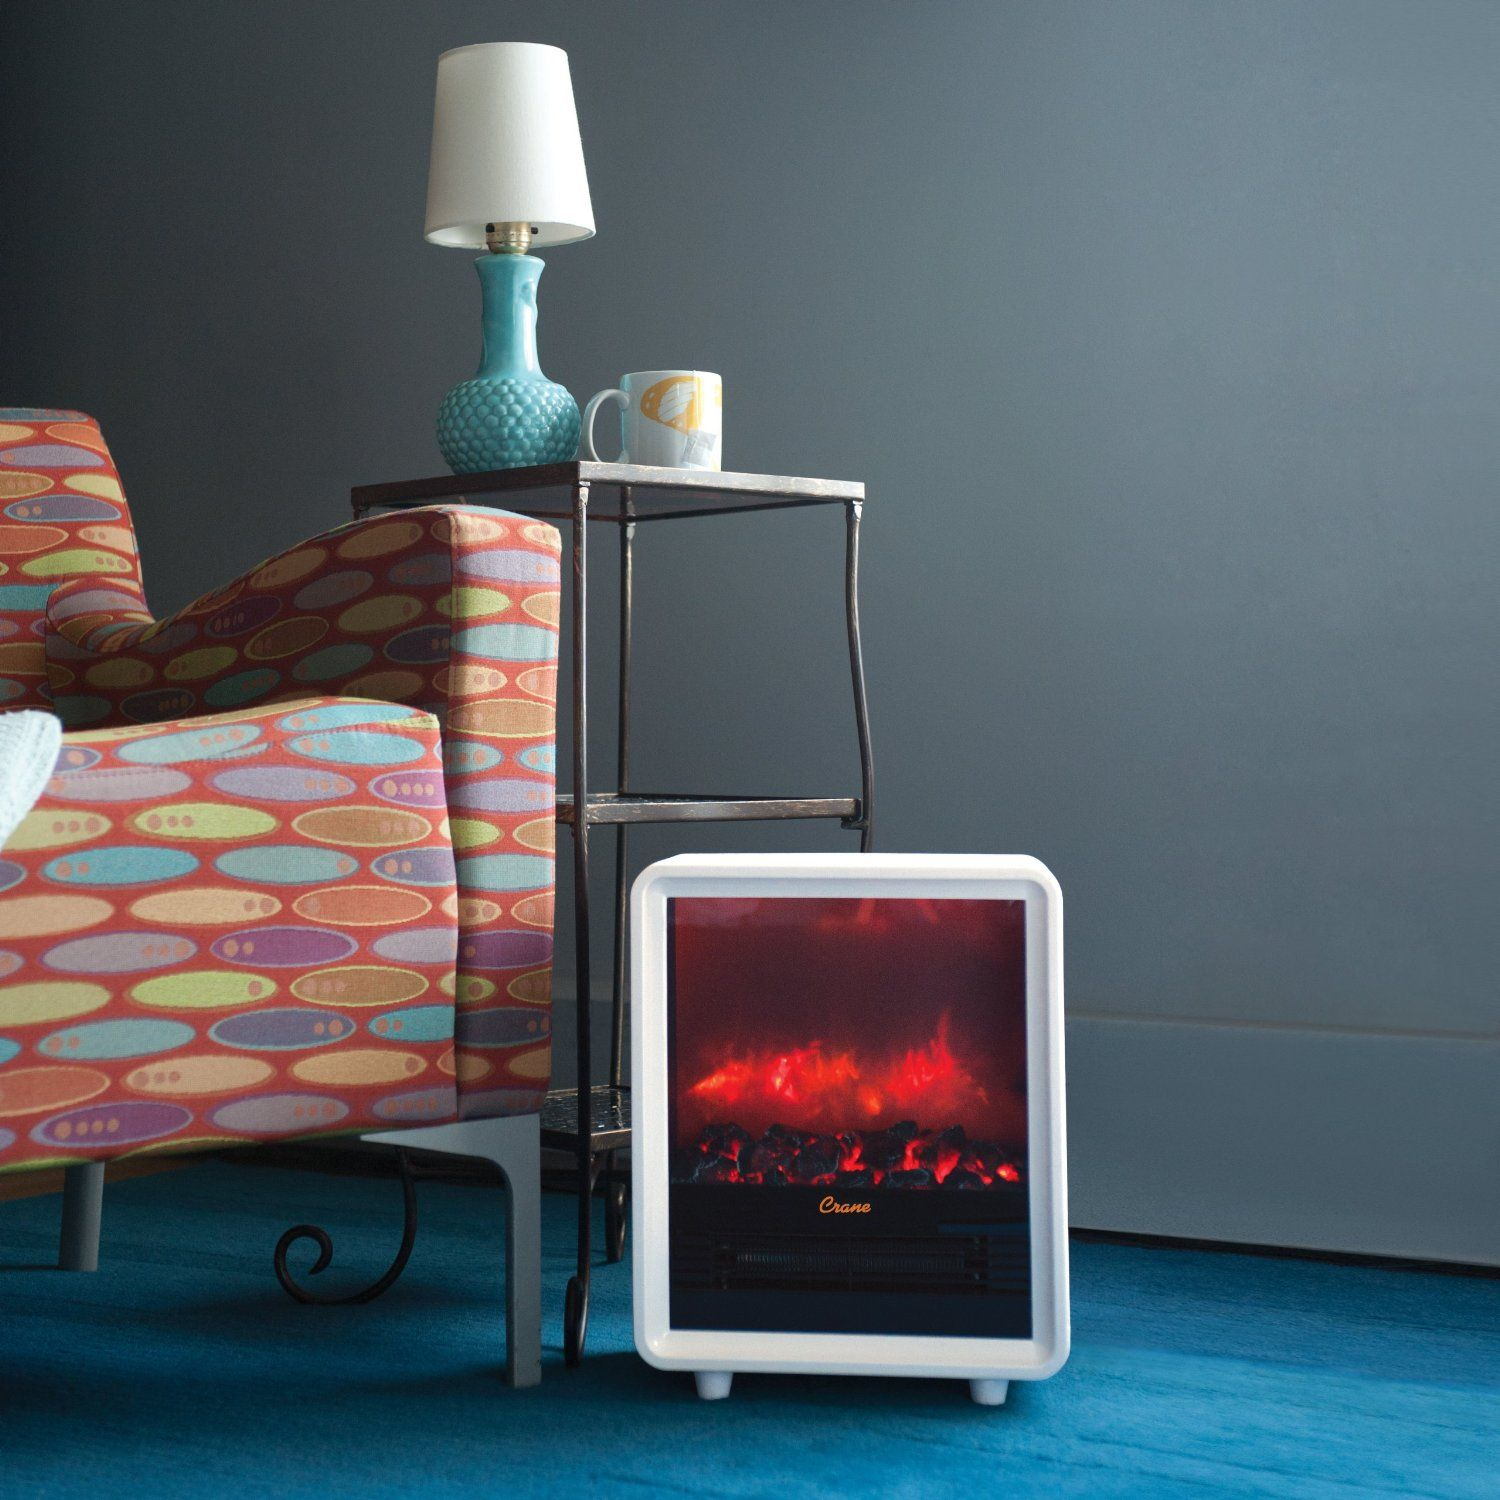 Crane Mini Fireplace Heaters Come In White Orange And Yellow And